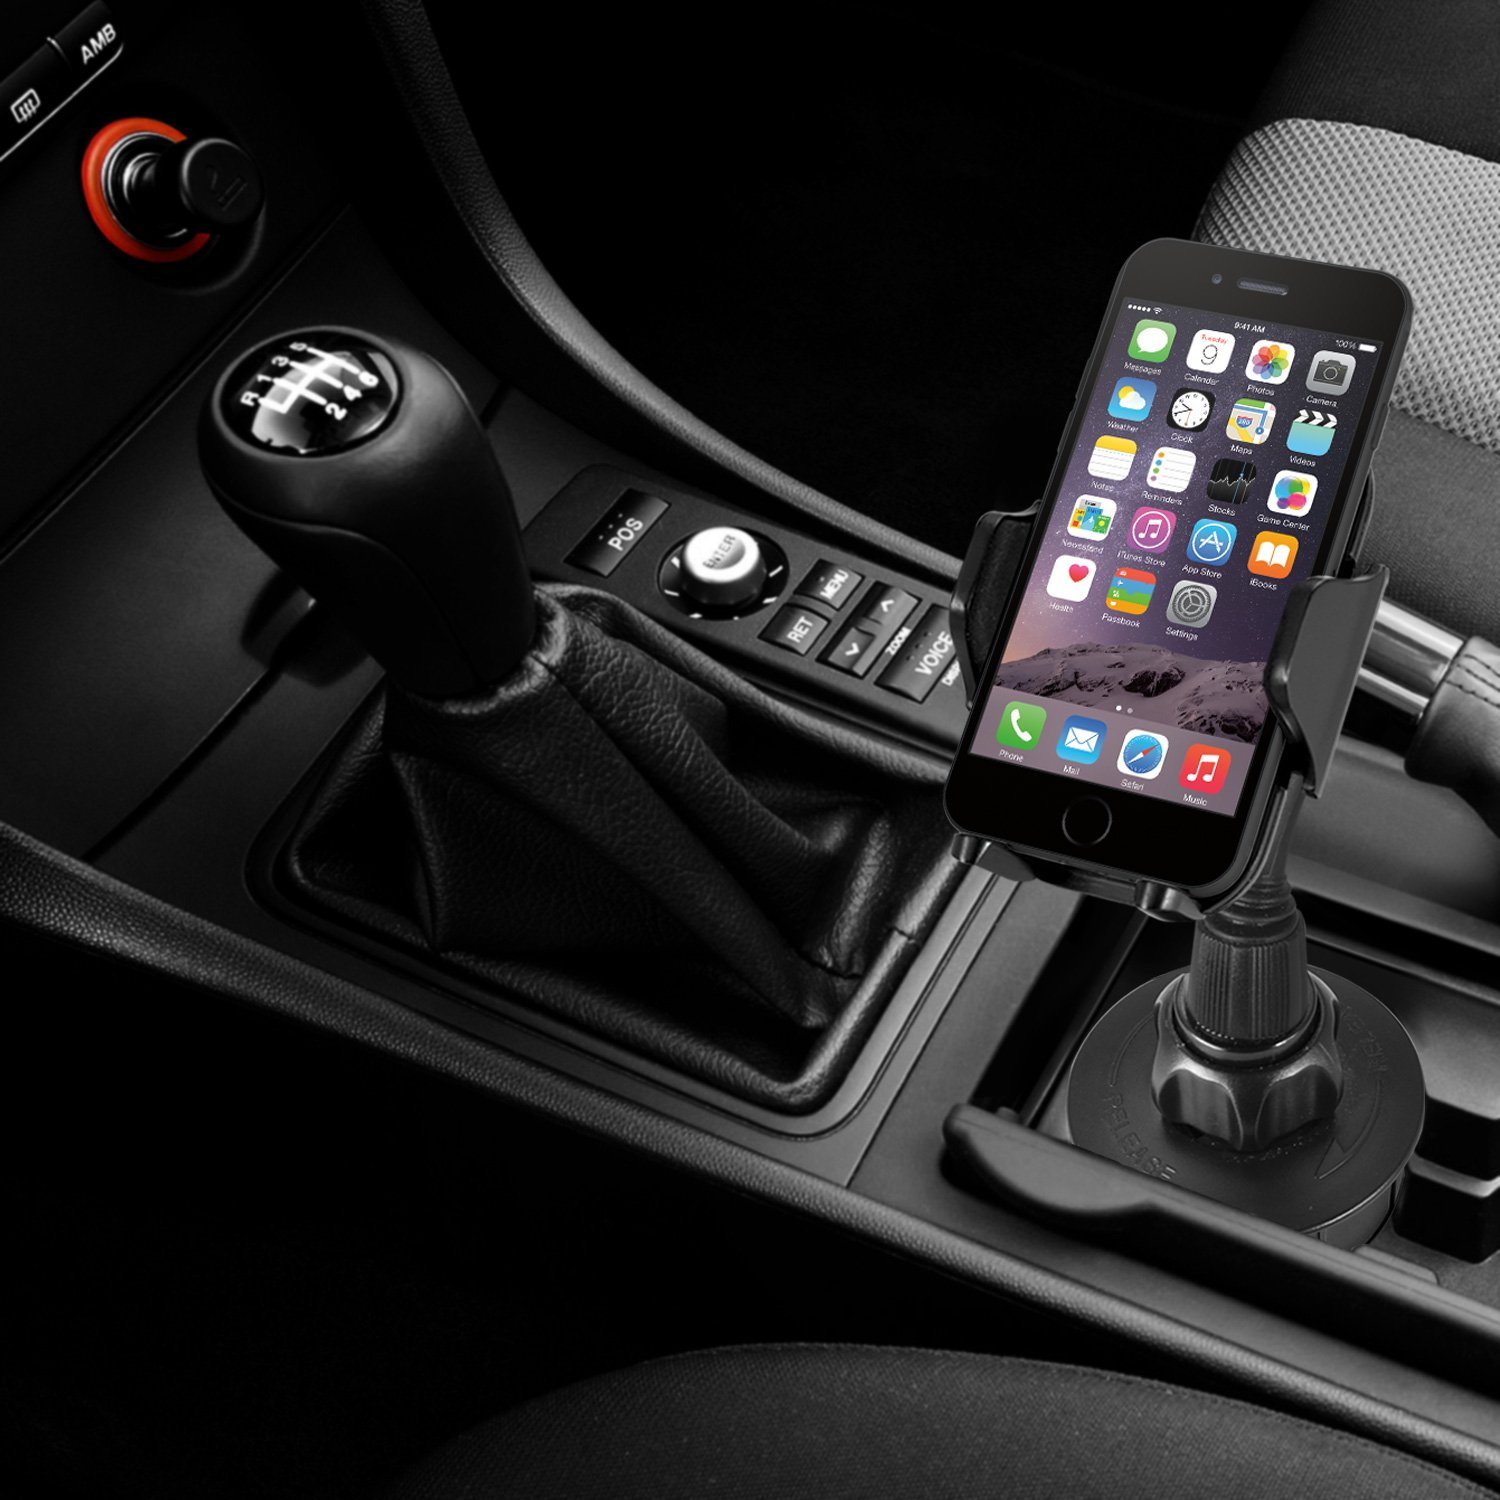 Macally Adjustable Automobile Cup Holder Phone Mount for iPhone X 8 8+ 7 7 Plus 6s Plus 6s SE Samsung Galaxy S9 S9+ S8 S7 Edge S6 S5 Note 5, iPod, Smartphones, MP3, GPS etc (MCUPMP) by Macally (Image #11)